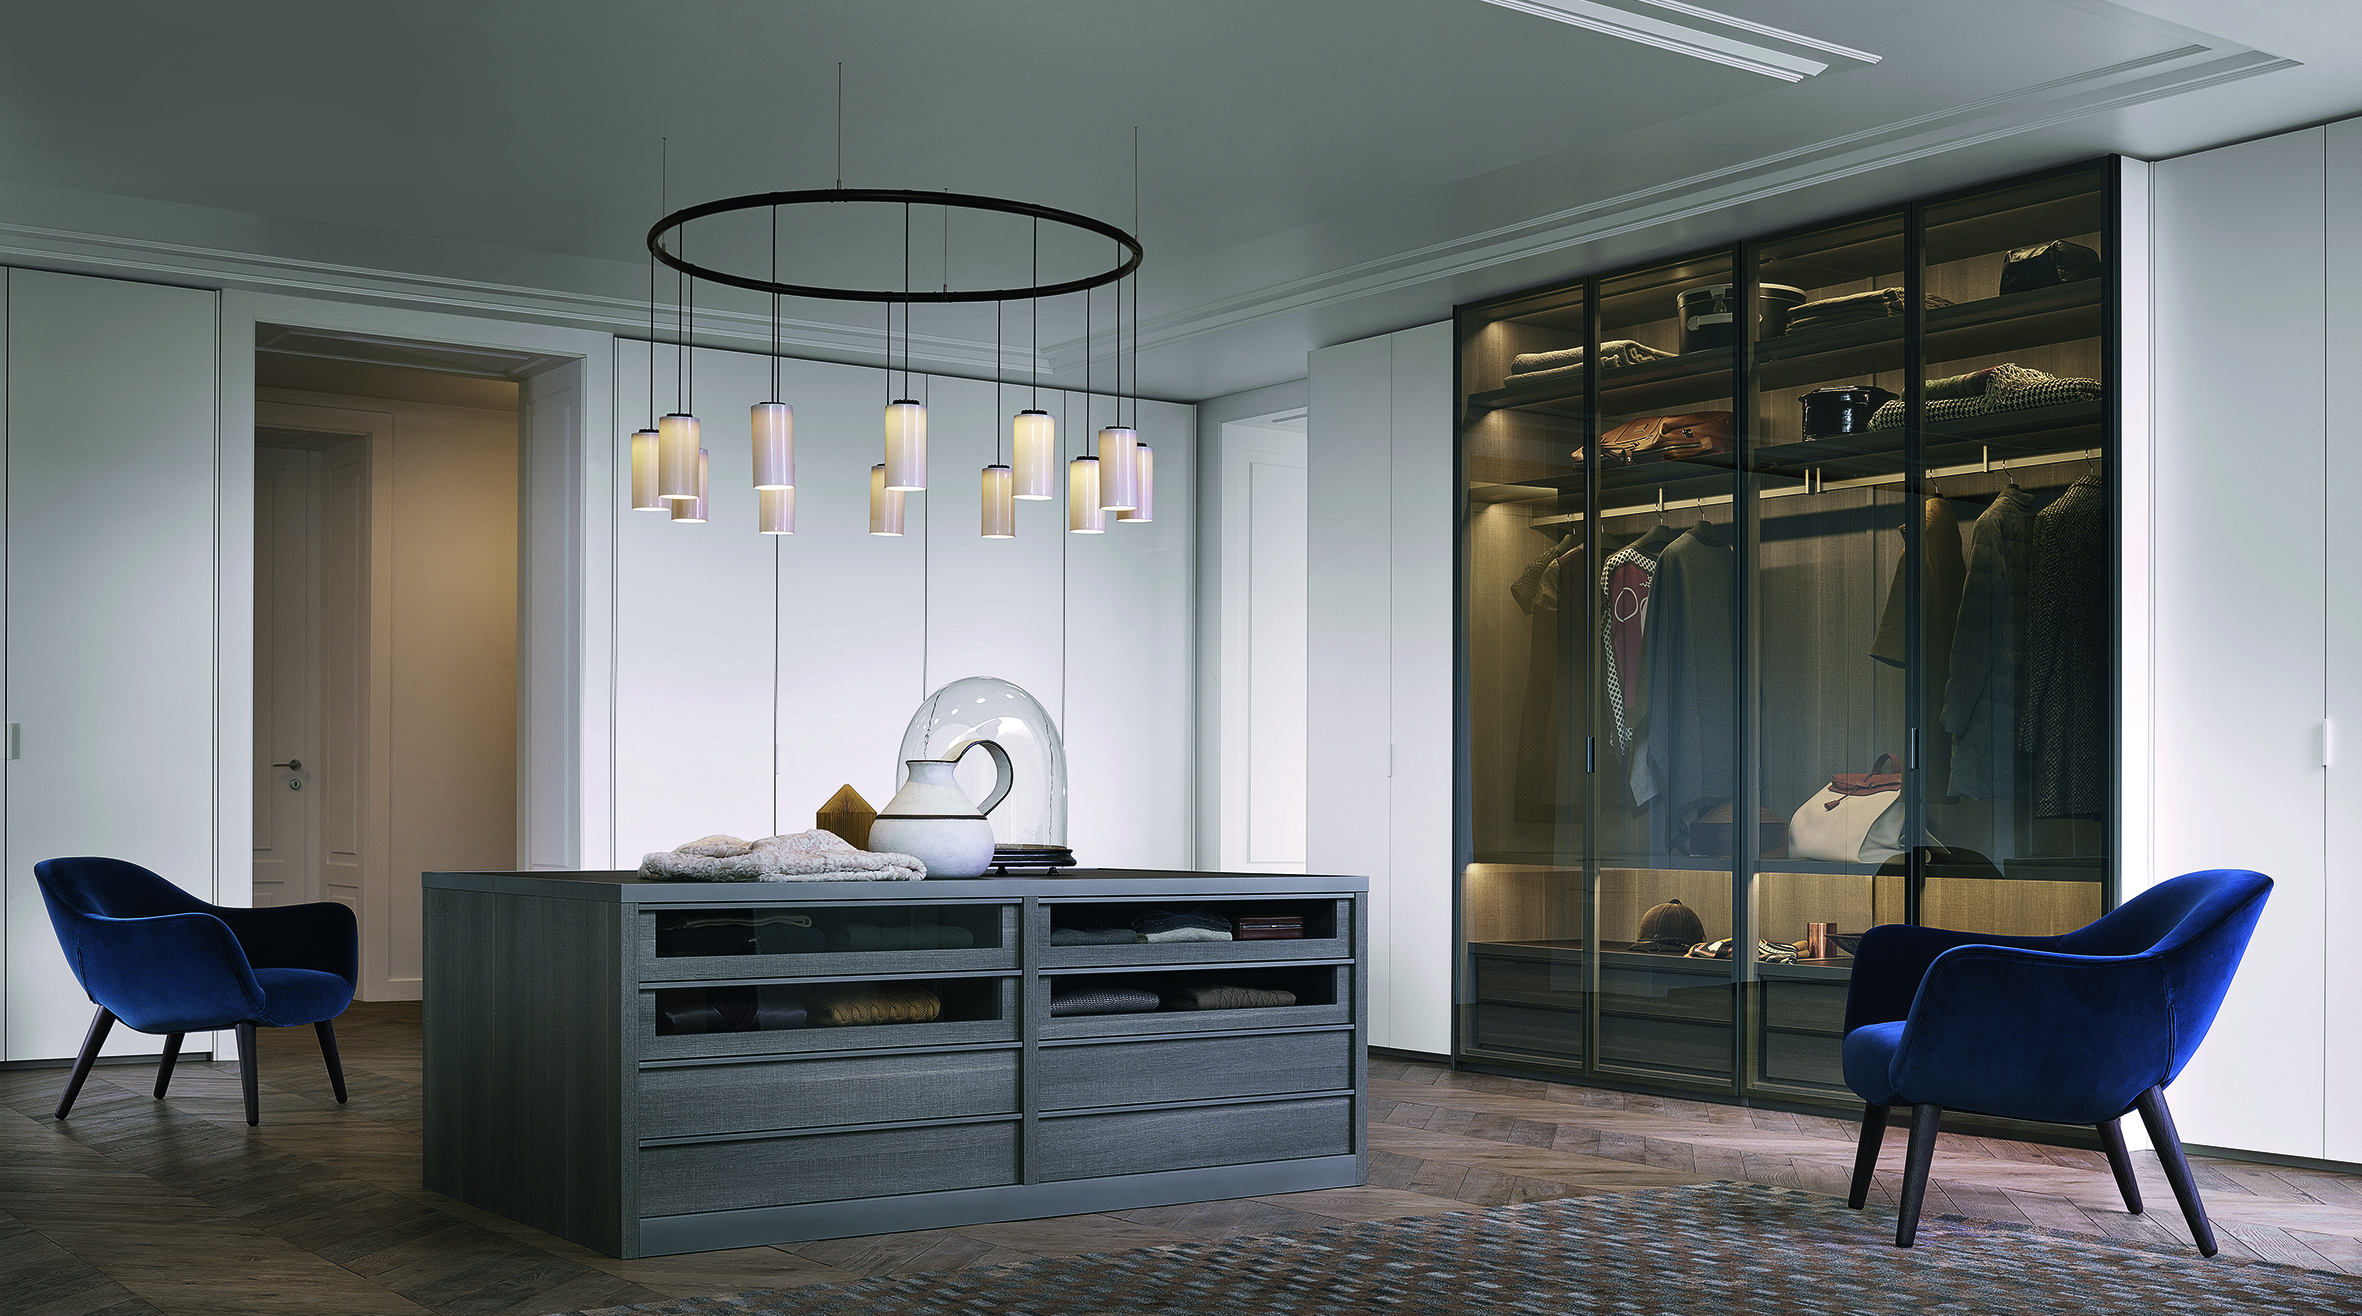 Known For Its Sleek, Modular Wardrobes And Library Systems, And For Its  Contemporary, Minimalist Poliform Kitchens, This Italian Furniture Producer  Can ...